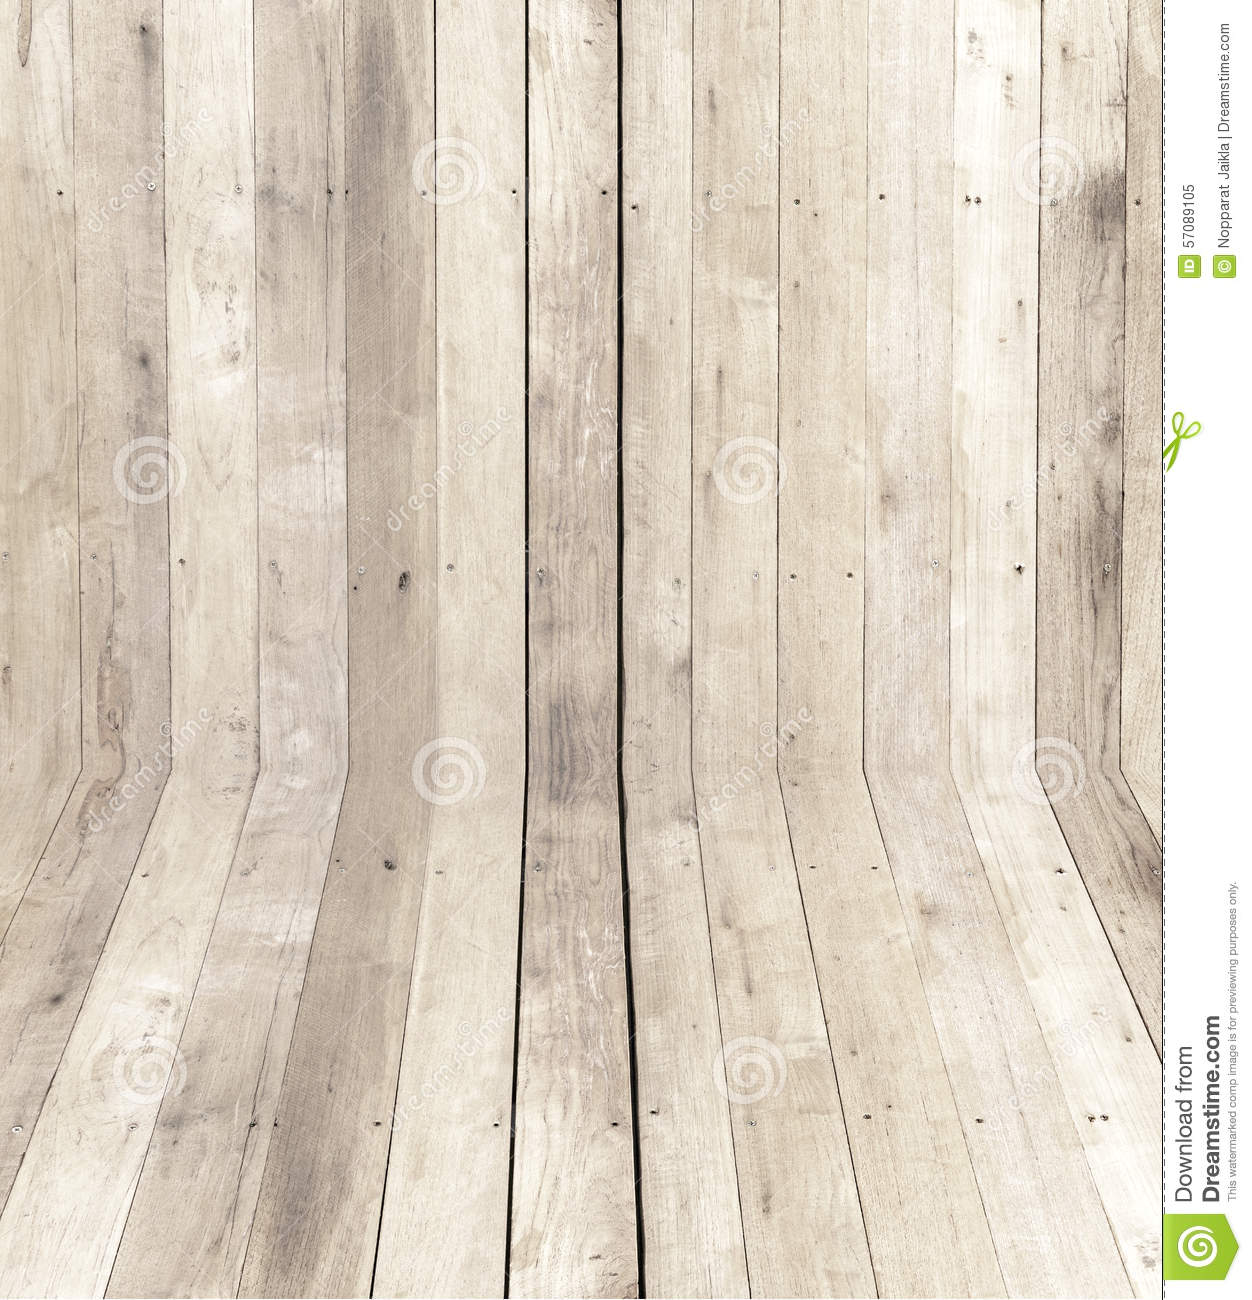 background panel texture white wood ... - White Wood Panel Texture Background Stock Photo - Image: 57089105